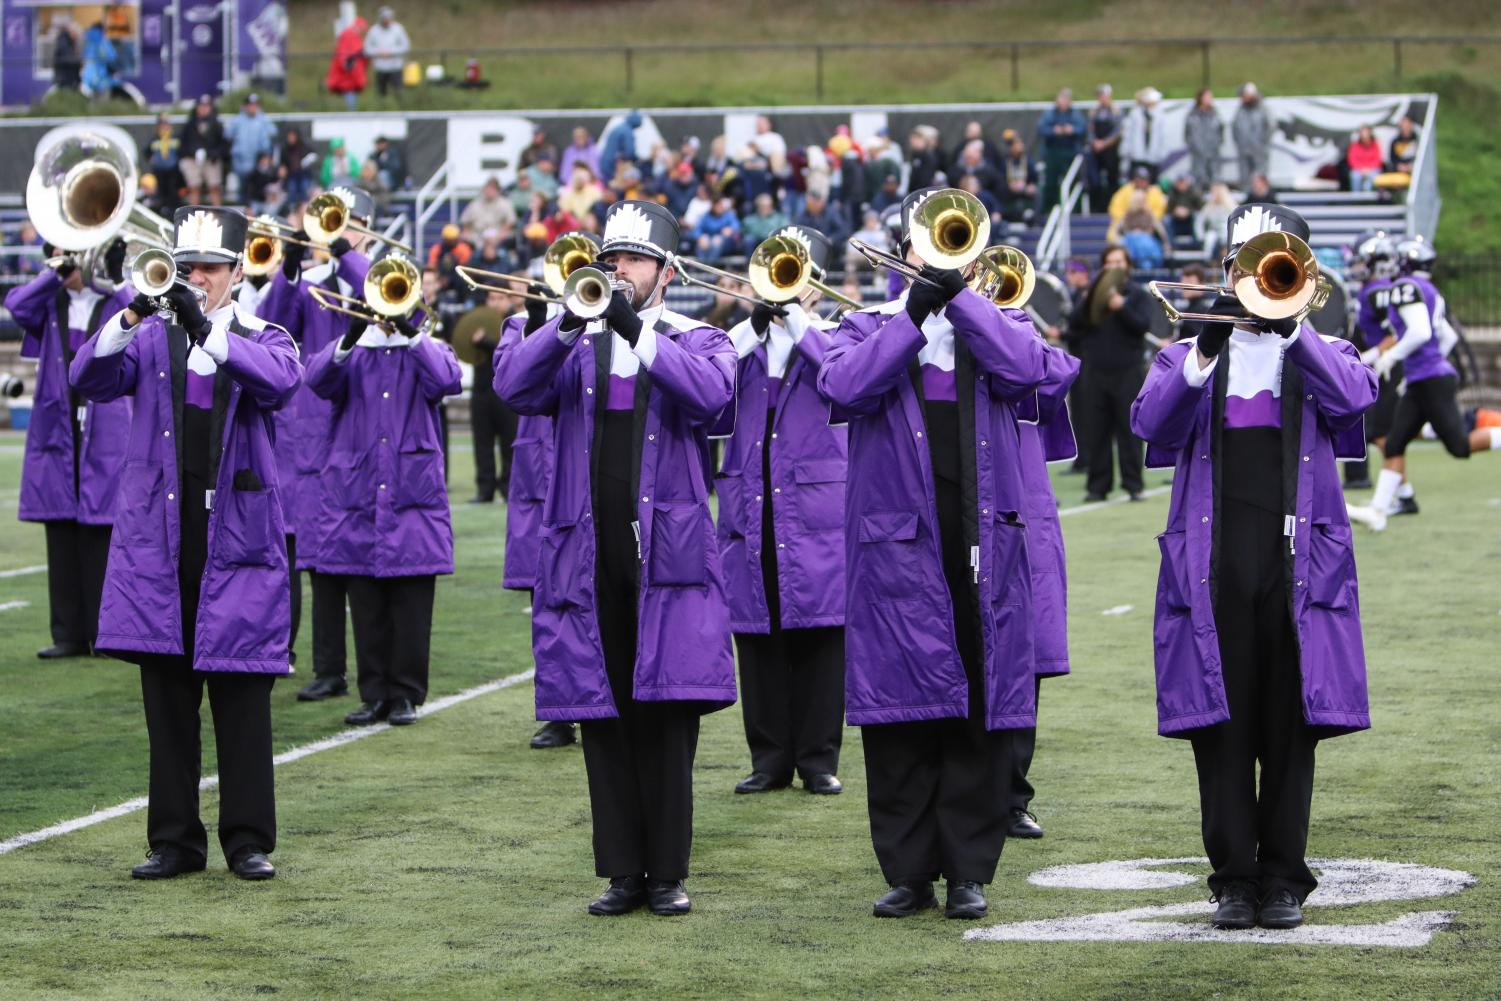 UW-Whitewater marching band performing during pre-game at the UW-Whitewater versus UW-Eau Claire Football game on Oct. 5.